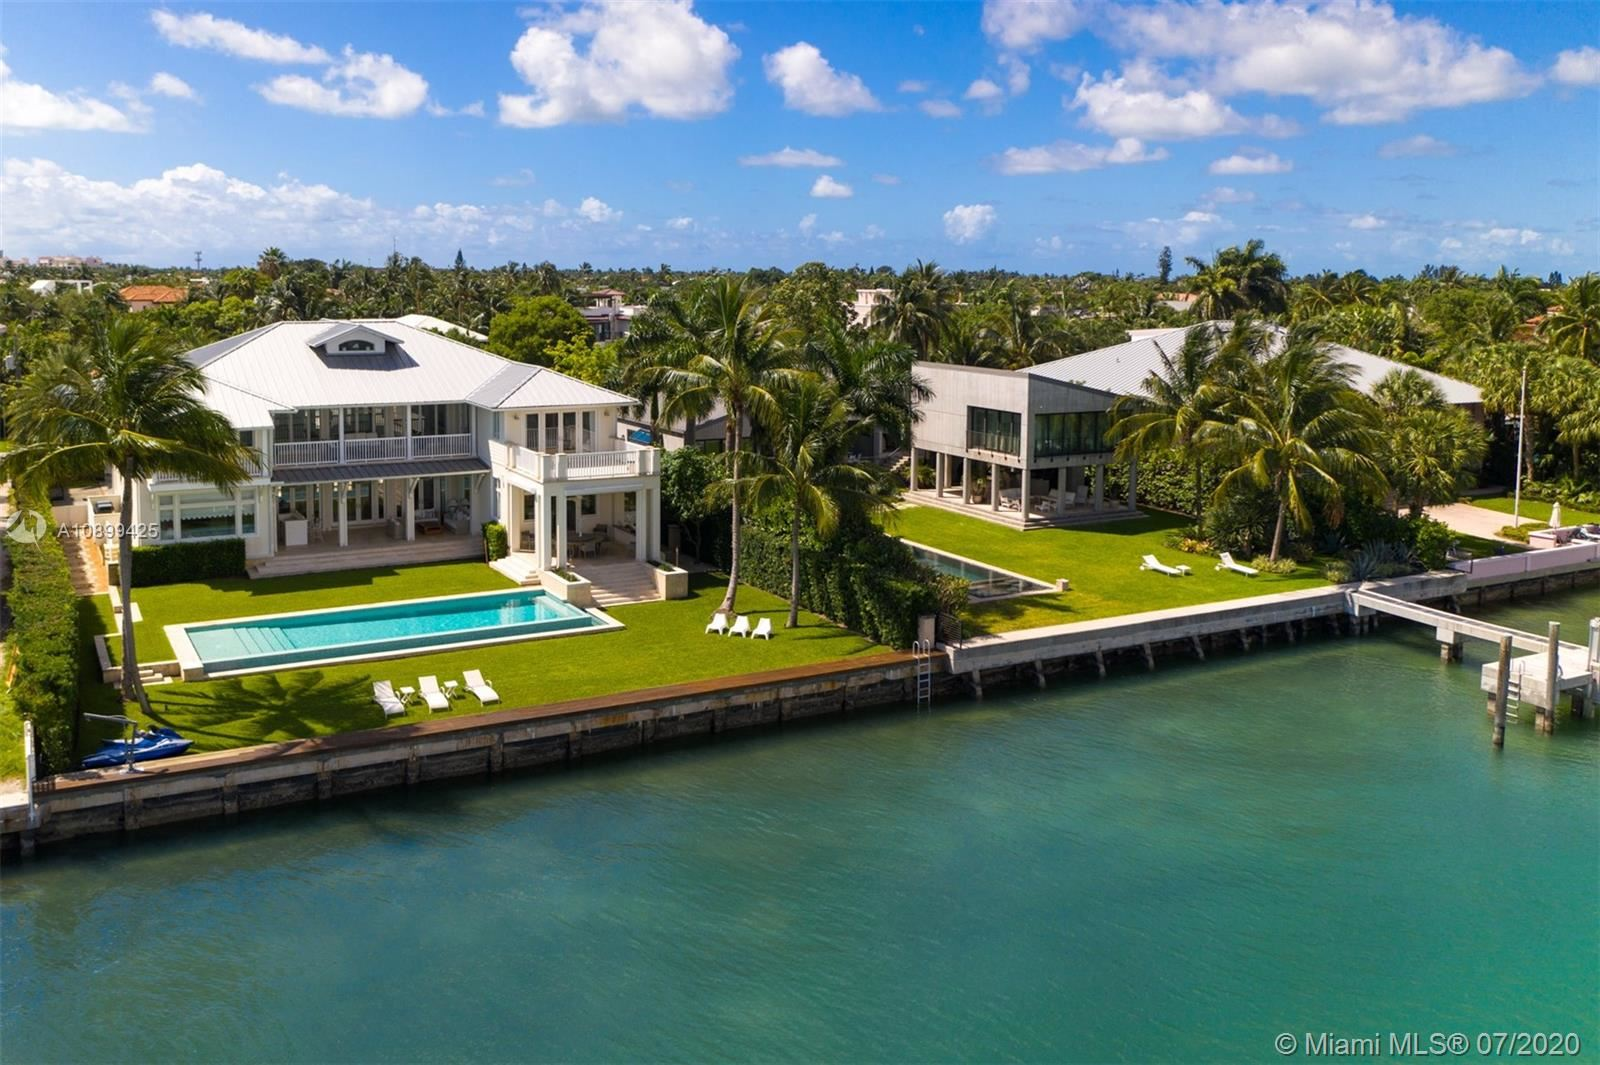 260 Harbor Dr, Key Biscayne, FL 33149 - #: A10899425